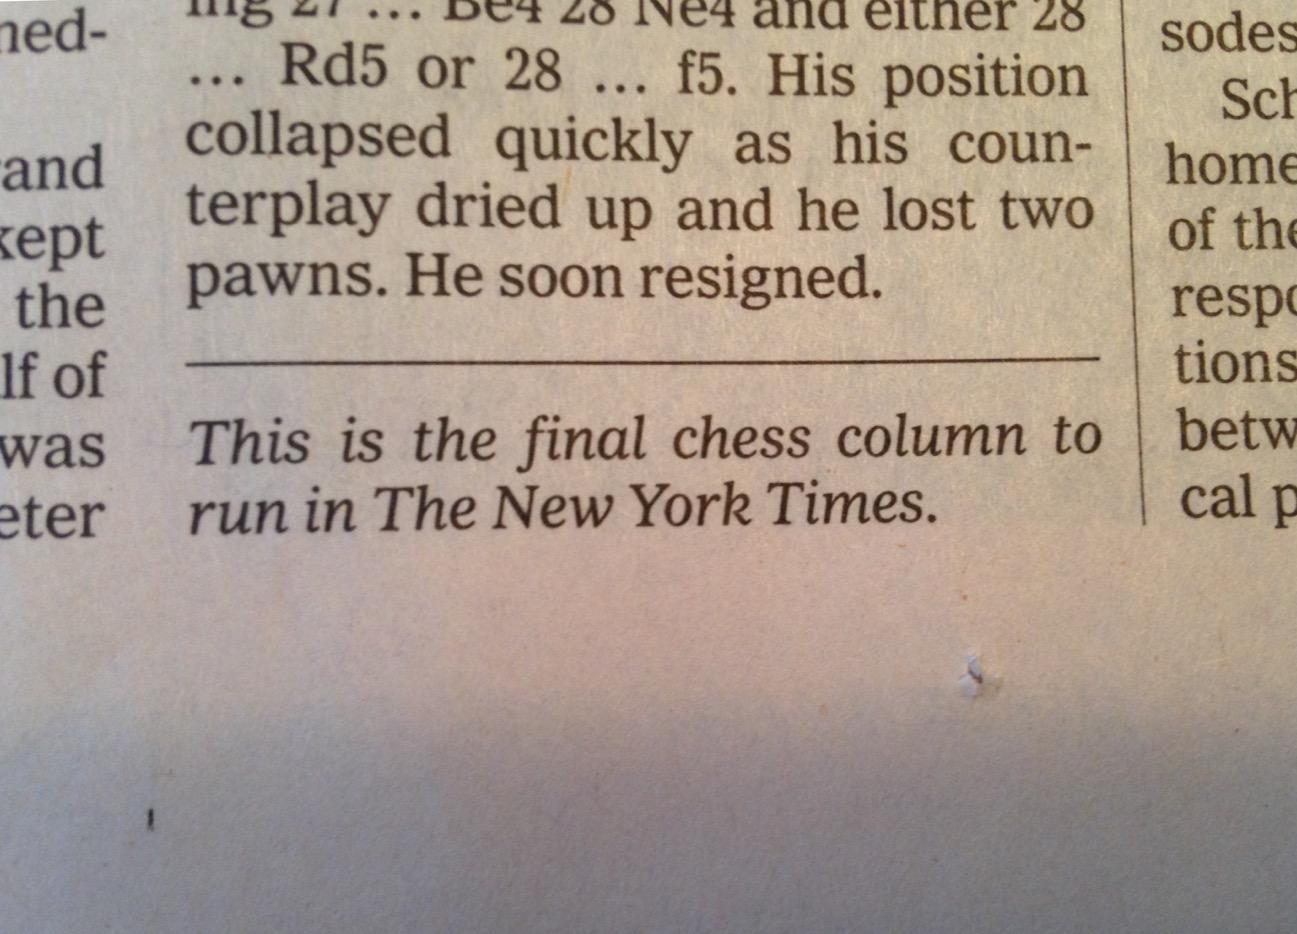 RT @DVNJr: A chess column has appeared in the NYT since... 1855. MT @kevingranville Spotted in today's NYT. Checkmate. http://t.co/lh3vHaym2E